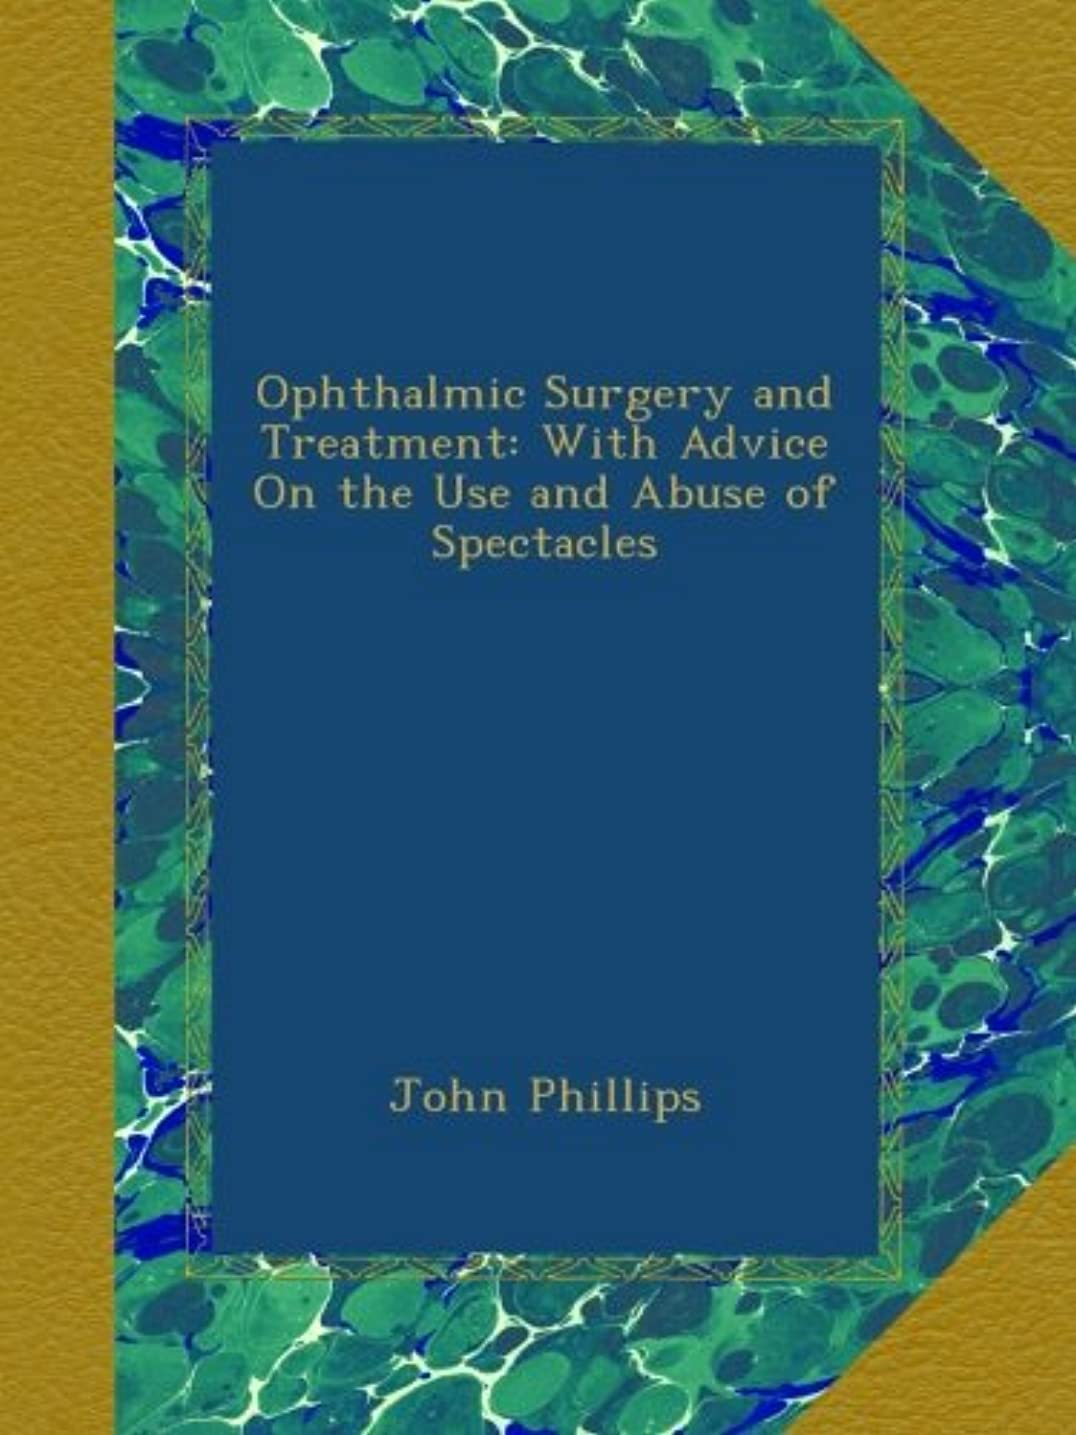 磁気処分した威信Ophthalmic Surgery and Treatment: With Advice On the Use and Abuse of Spectacles